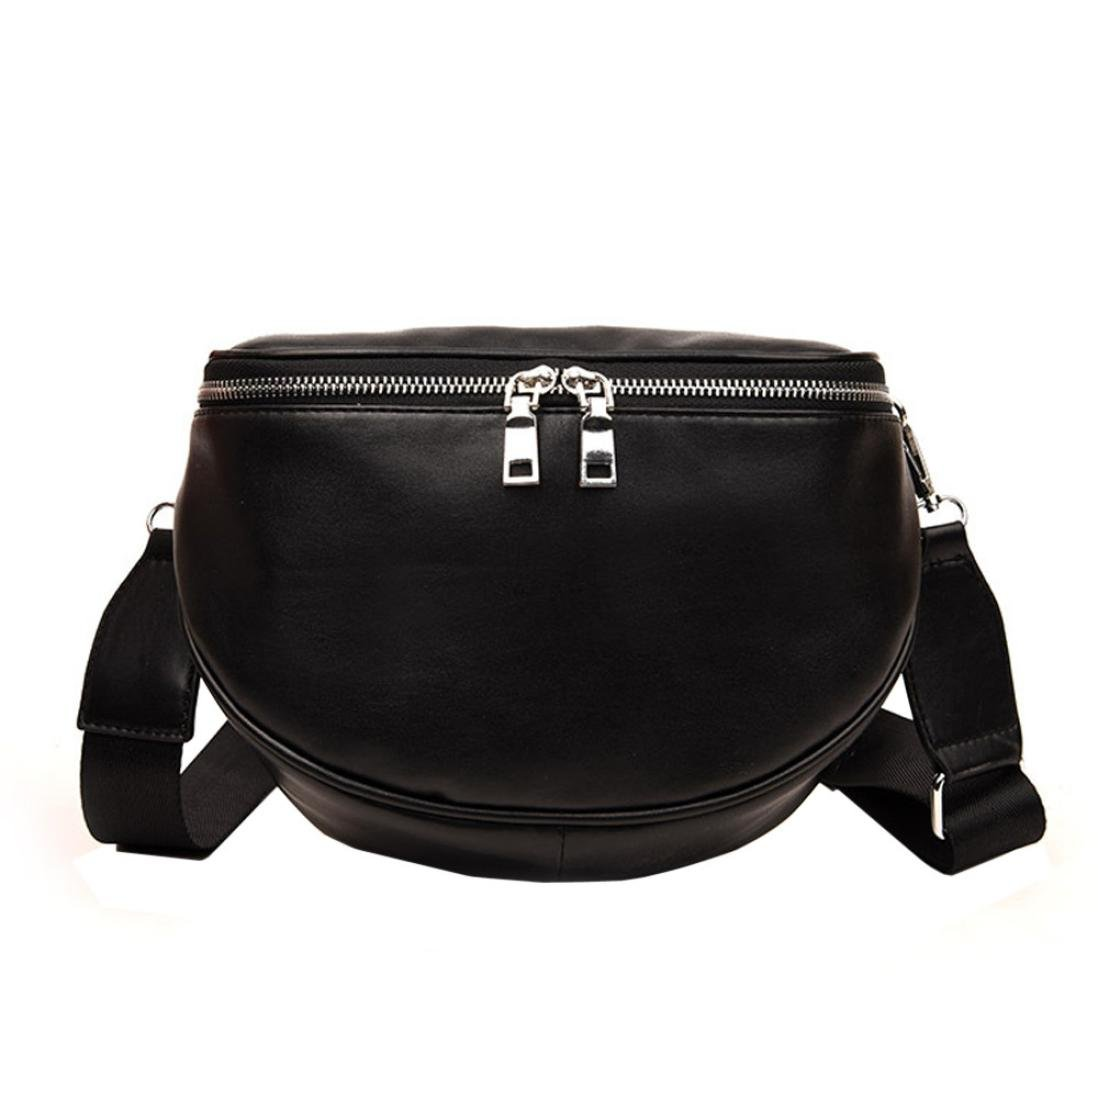 Fashion Women Black Zipper Shell Leather Crossbody Bag Chest Bag Napoo-Bag